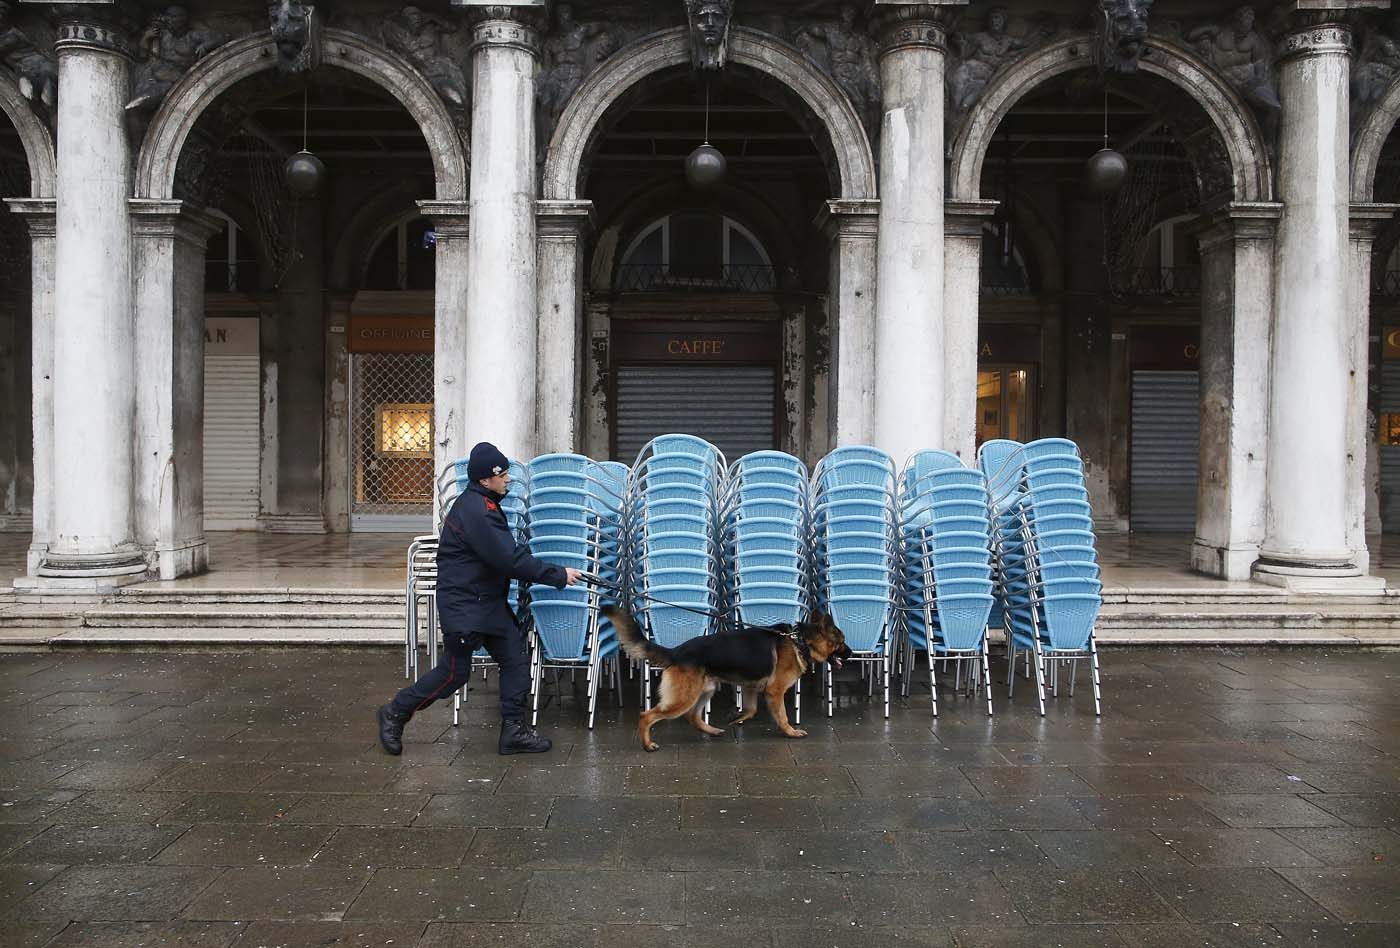 An Italian policeman patrols with his dog at San Marco Piazza during the Venice Carnival, January 31, 2016. REUTERS/Alessandro Bianchi